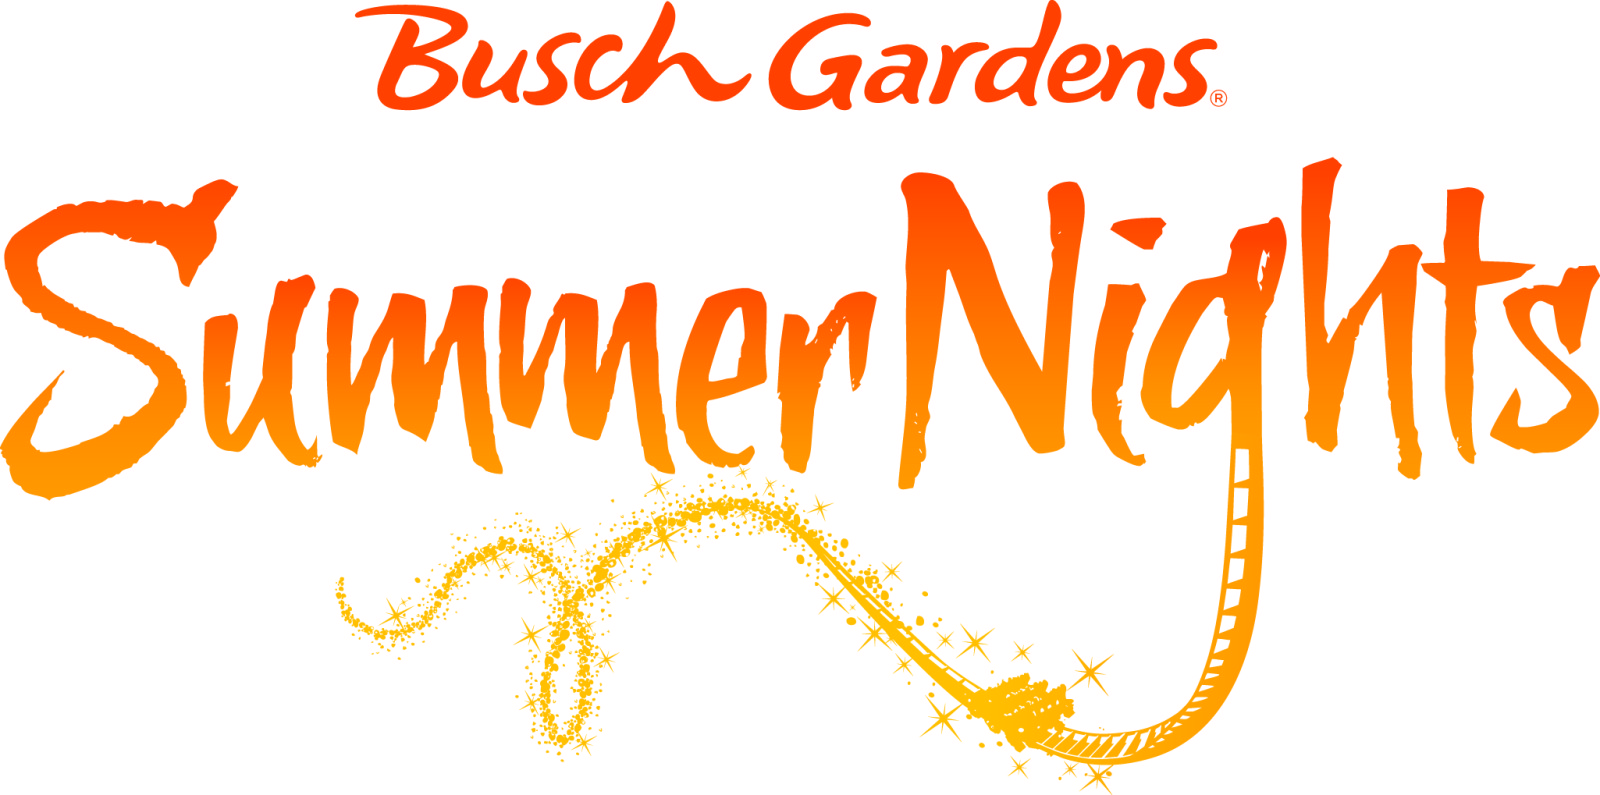 Summer Nights Busch Gardens Tampa Logo 2014